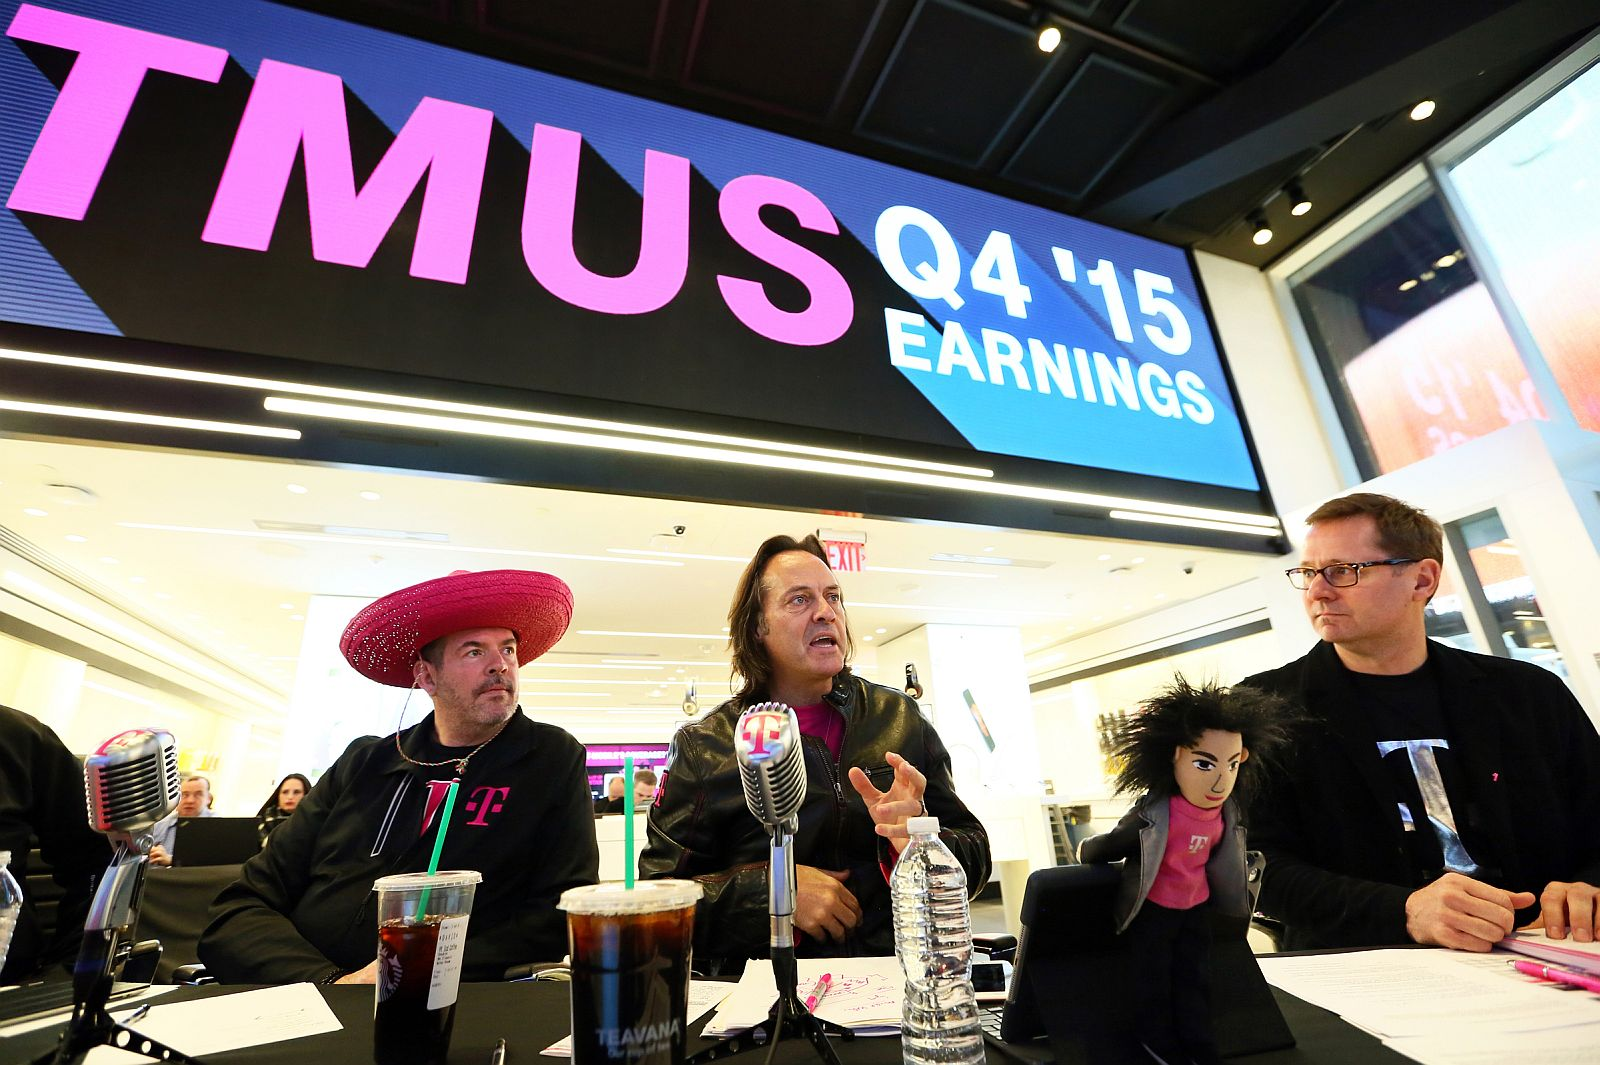 From left to right, T-Mobile CFO Braxton Carter, CEO John Legere and COO Mike Sievert report record customer numbers, higher revenue and a growing network during quarterly earnings from a new signature store in New York's Times Square, Wednesday, February 17, 2016. In Q4 the company reported 2.1 million total net customer additions, marking the 11th quarter in a row with more than 1 million additions.(Stuart Ramson/AP Images for T-Mobile)